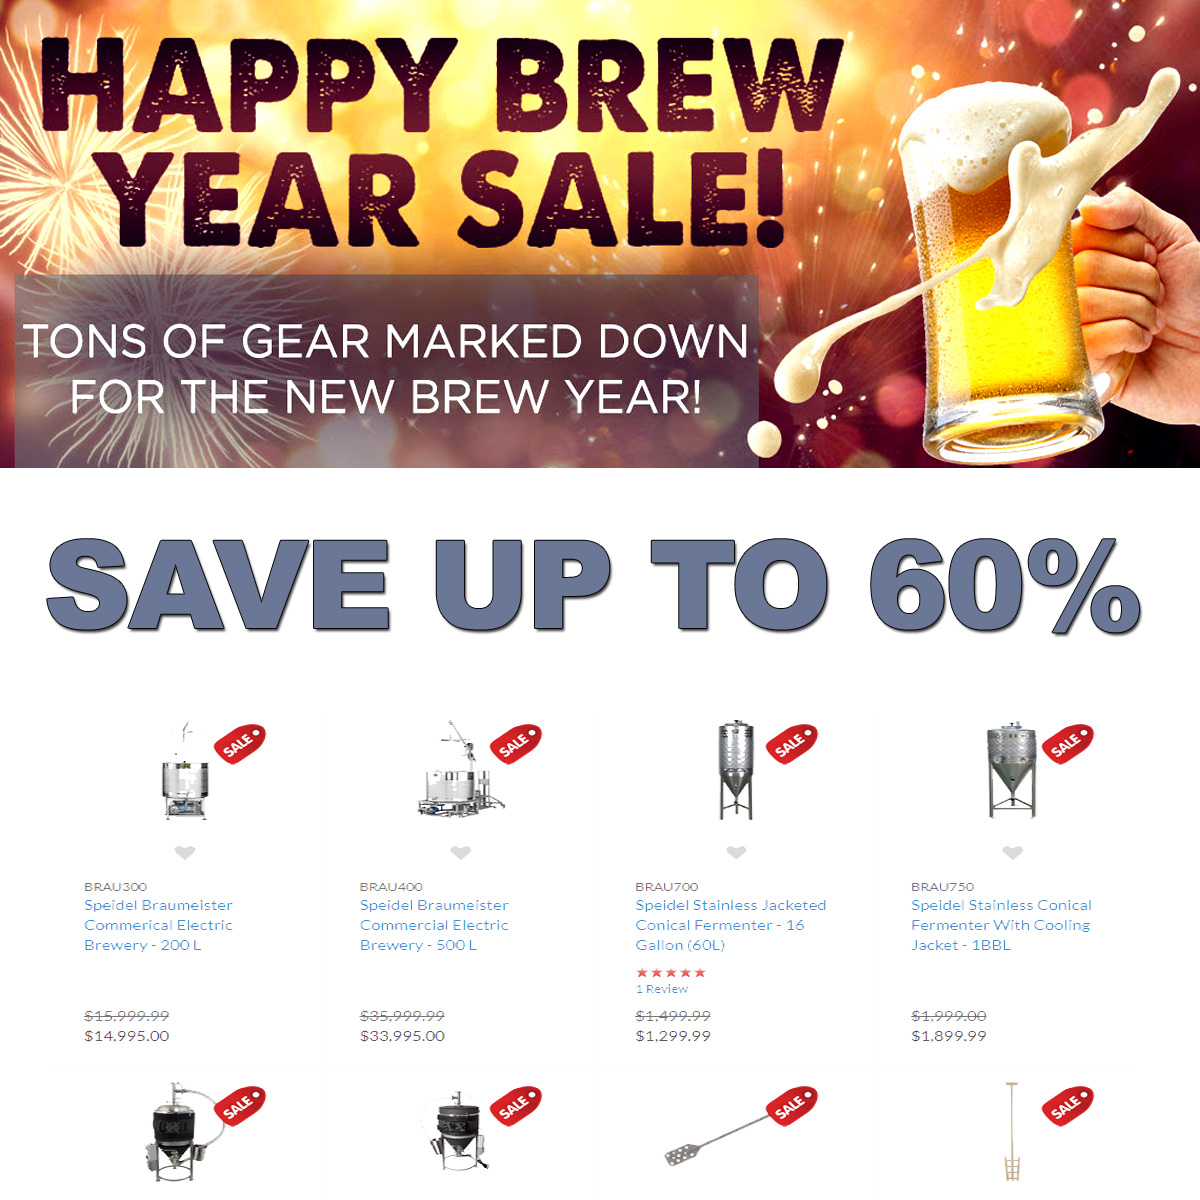 Home Wine Making Coupon Codes for Save Up To 60% On Poplular Wine Making Items During The More Beer Happy Brew Year Sale! Coupon Code